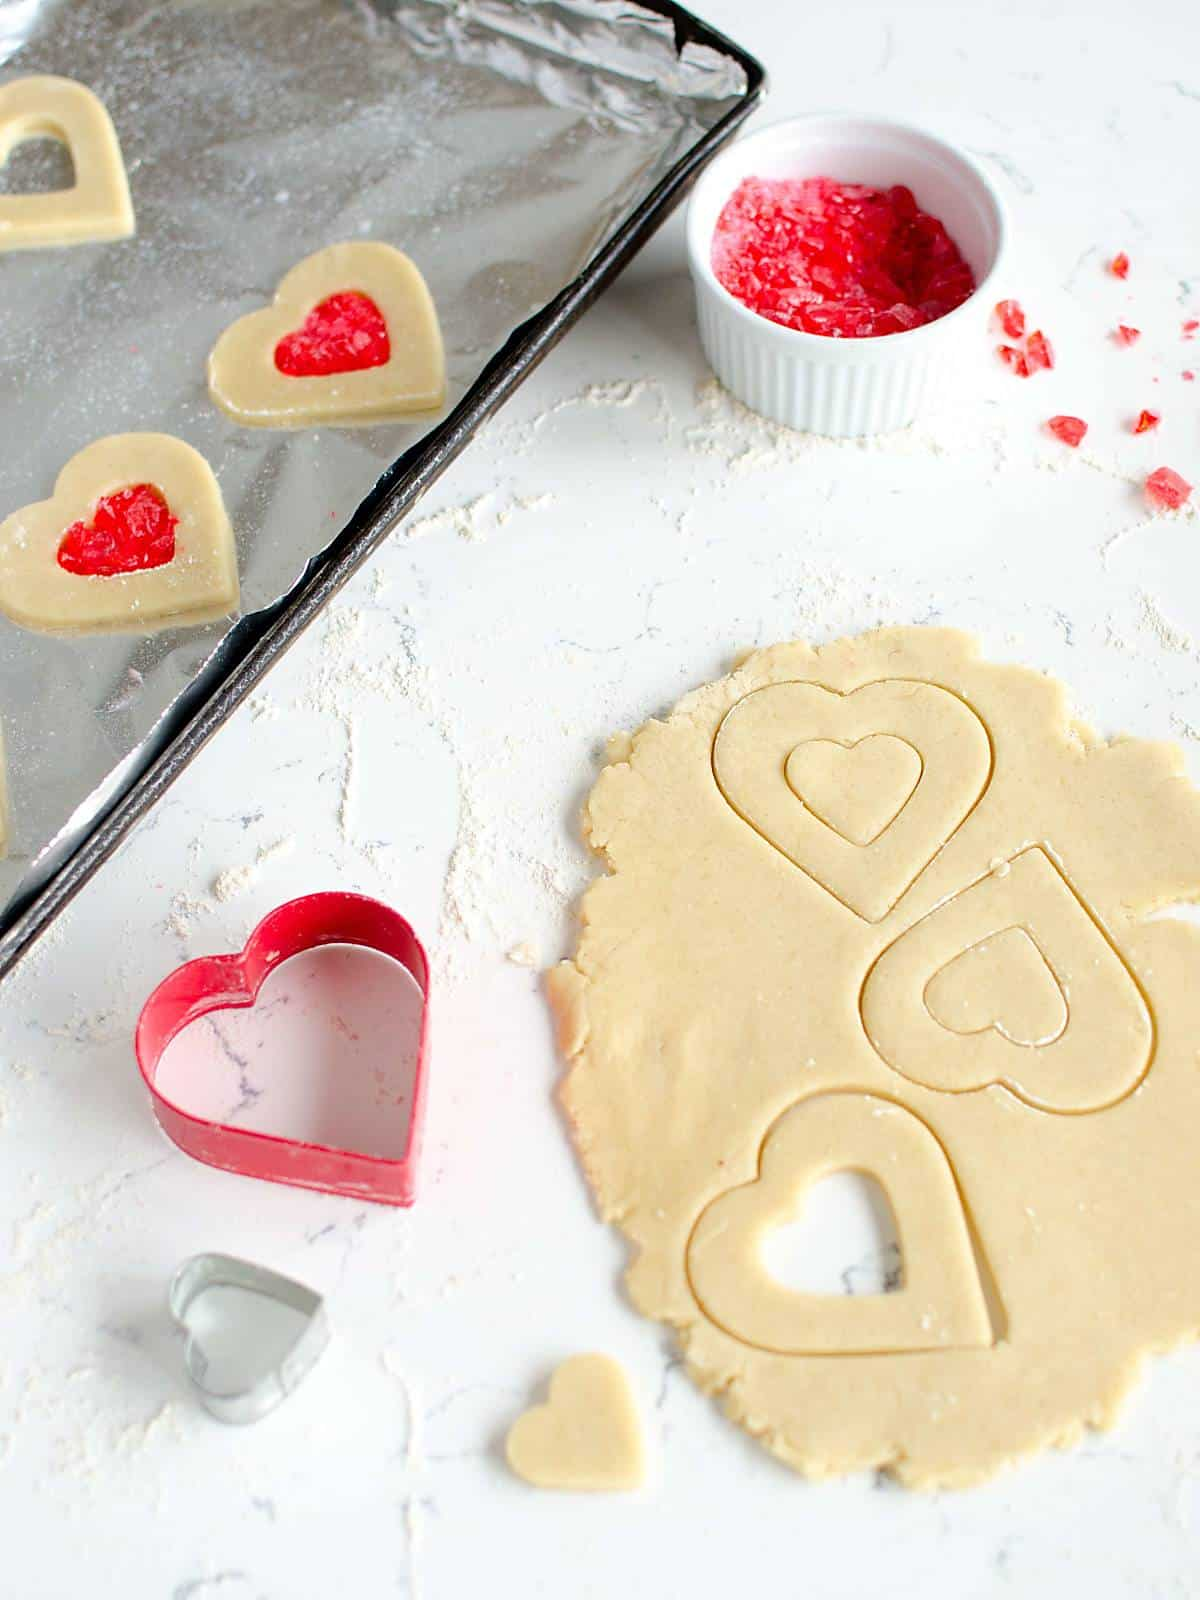 rolled cookie dough with heart shaped cookie cut outs, cookie cutters, and crushed red candy